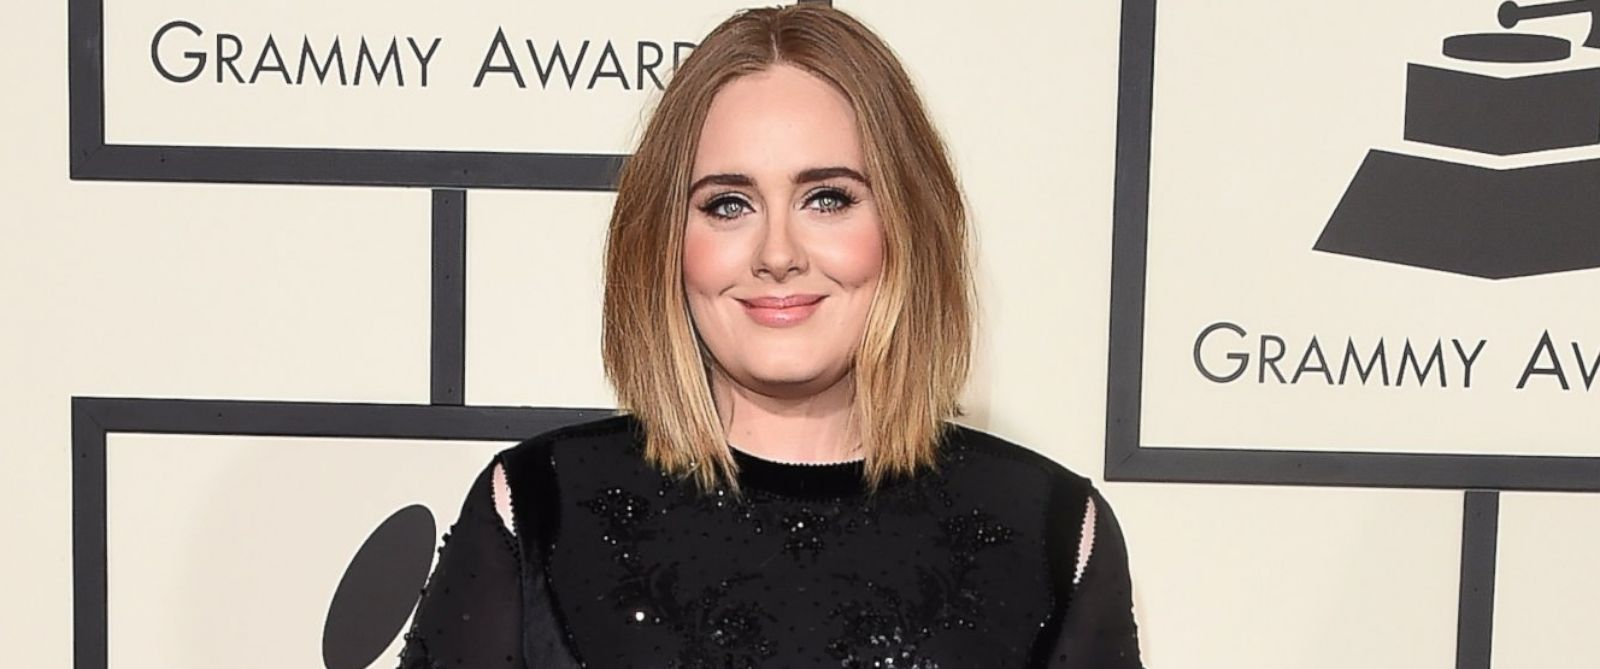 PHOTO: Singer Adele attends The 58th GRAMMY Awards at Staples Center, Feb. 15, 2016, in Los Angeles.